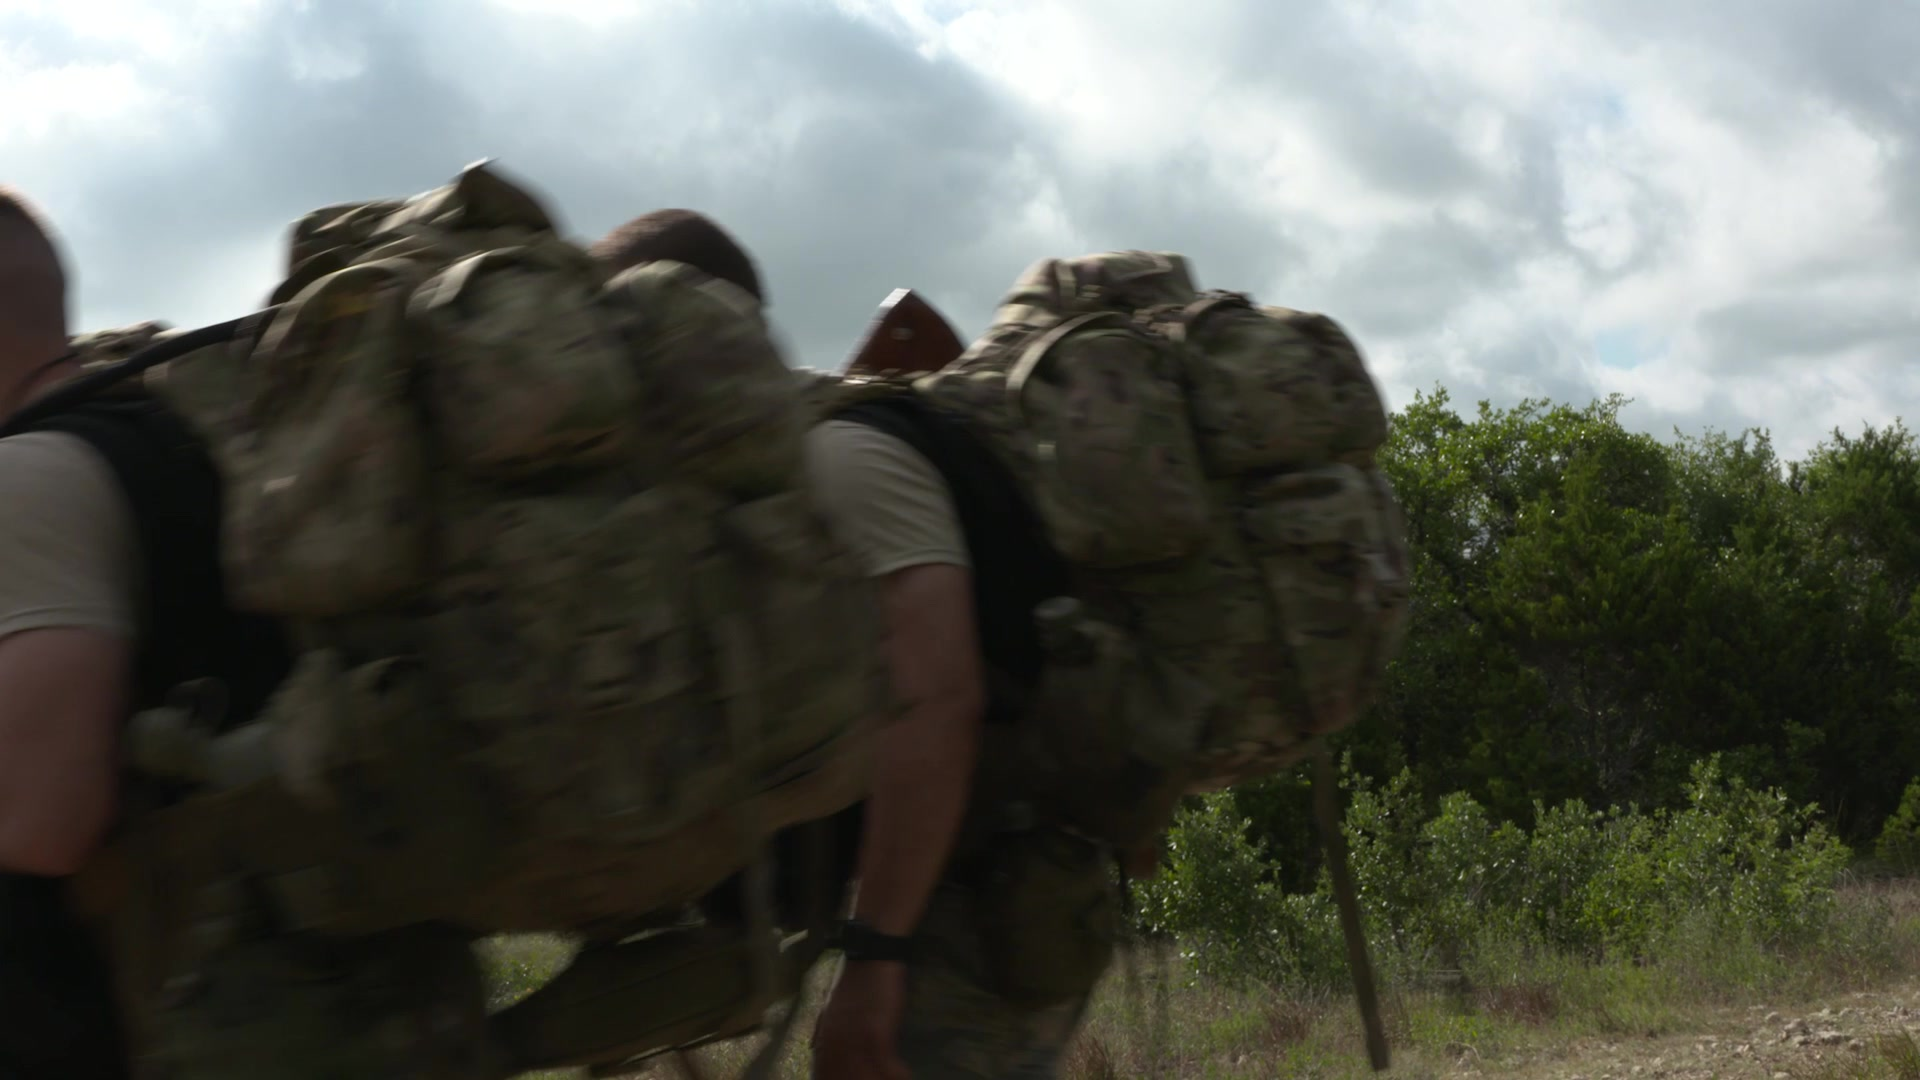 Survival, Evasion, Resistance, and Escape (SERE) candidates participate in field training exercise June 27, 2018 at Camp Bullis, Texas. Candidates must overcome roughly a year's worth of demanding training before calling themselves SERE specialists. Their trials start with the SERE Specialist Training Orientation Course (SST-OC) located at Joint Base San Antonio. (U.S. Air Force video by Marcelo Joniaux)